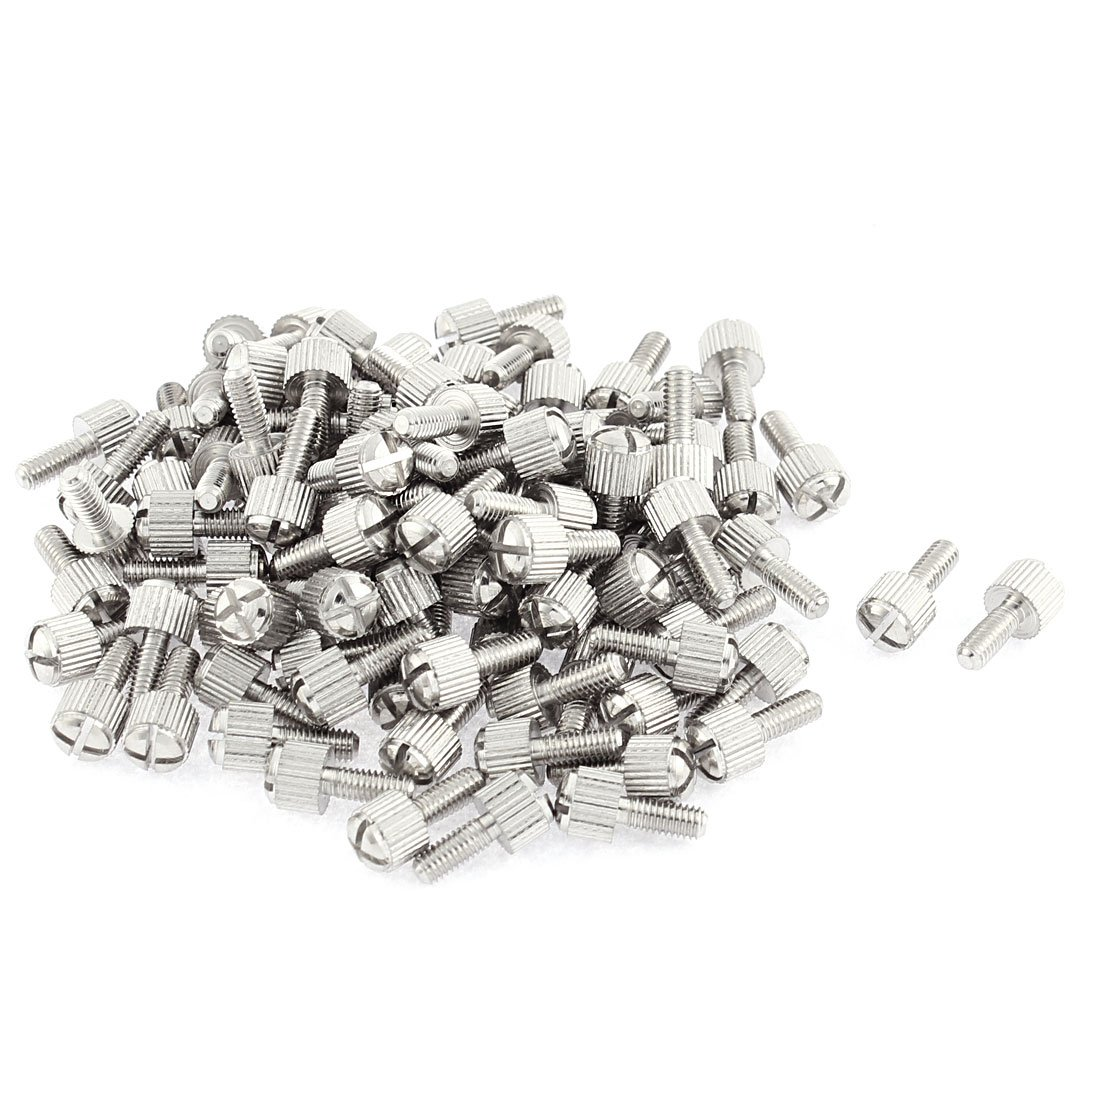 Computer PC Case M4x10mm Knurled Head Phillips Thumb Screws 100pcs by uxcell